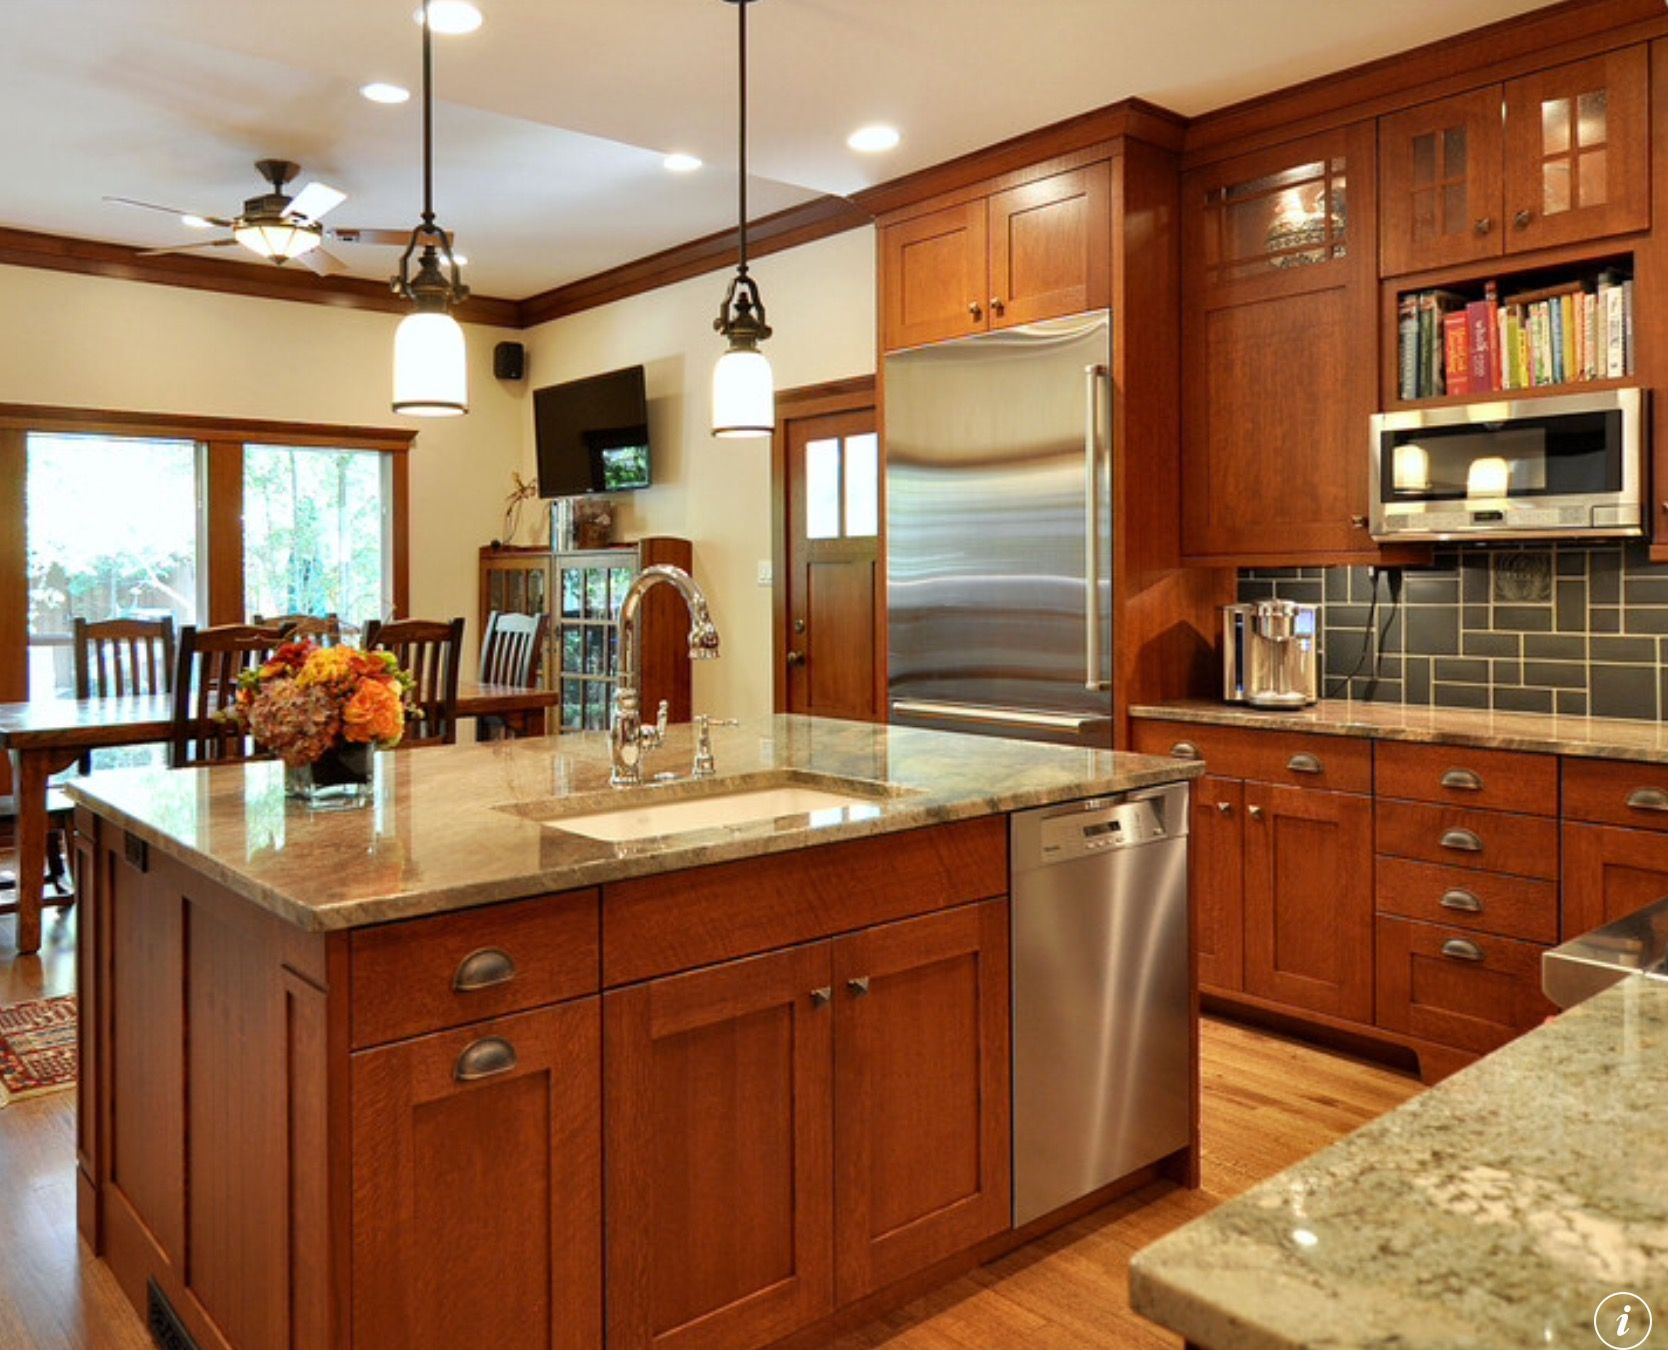 Pin by Patty Nelson Iott on Kitchen Remodel Ideas ...